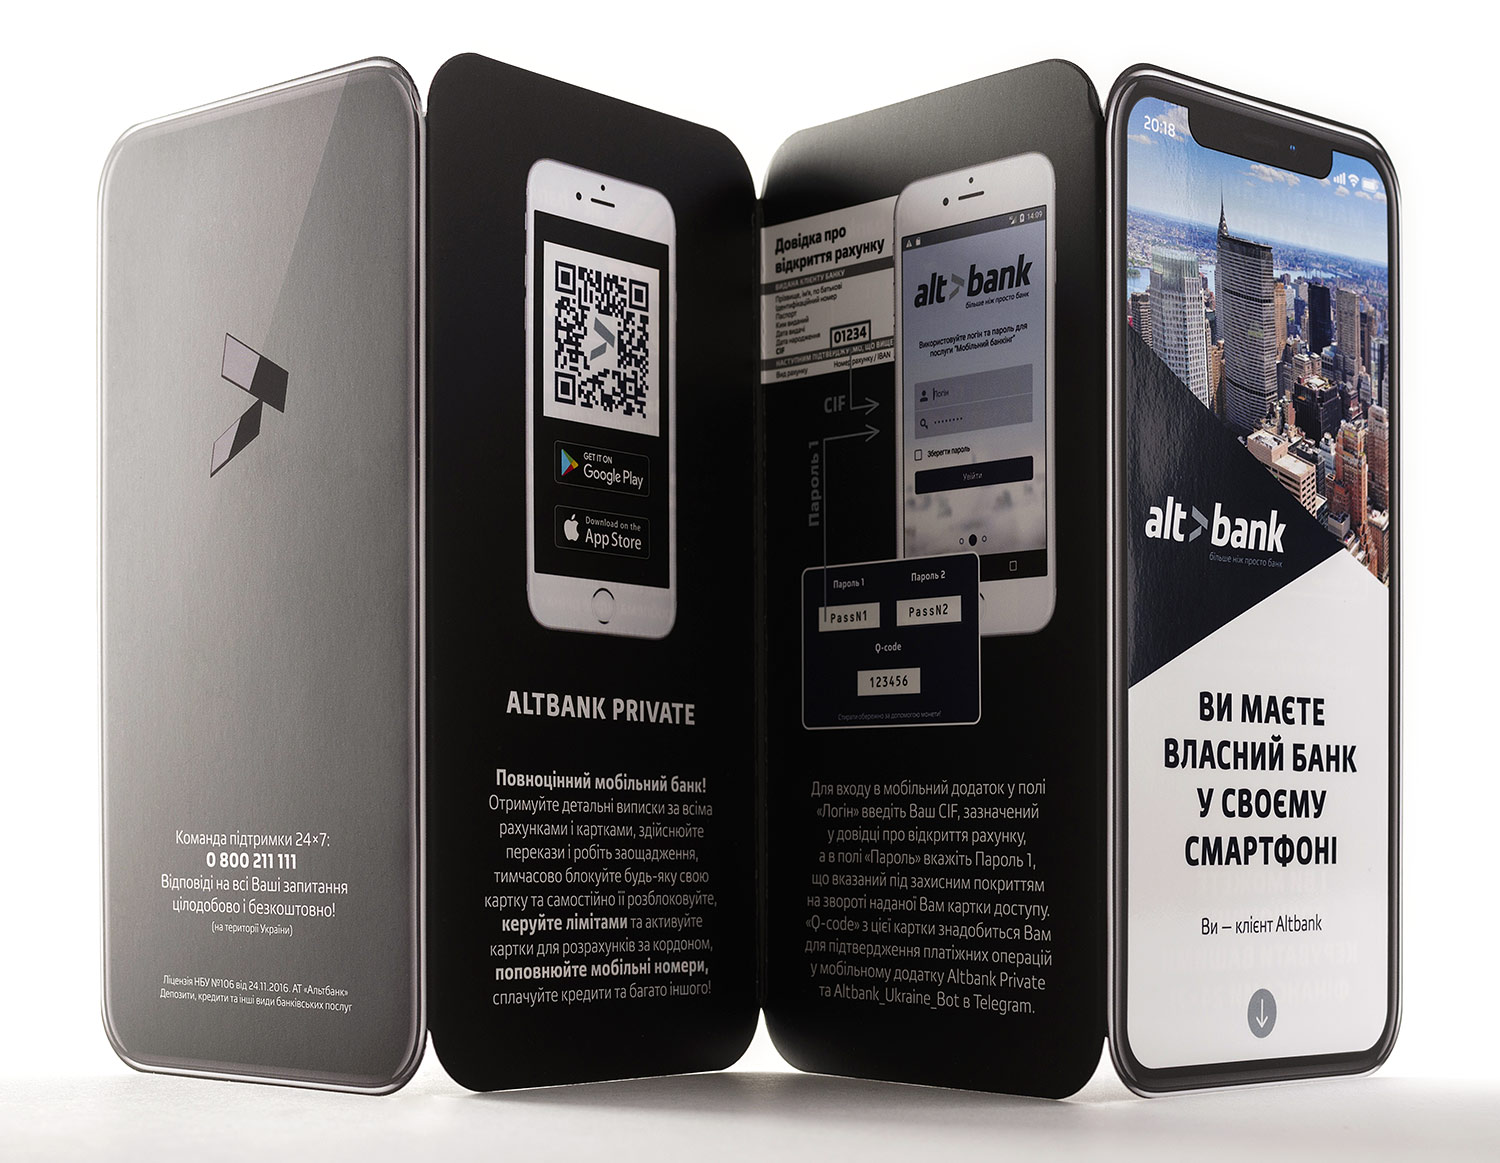 A fanfold booklet in the form of a smartphone. Bank information booklet.